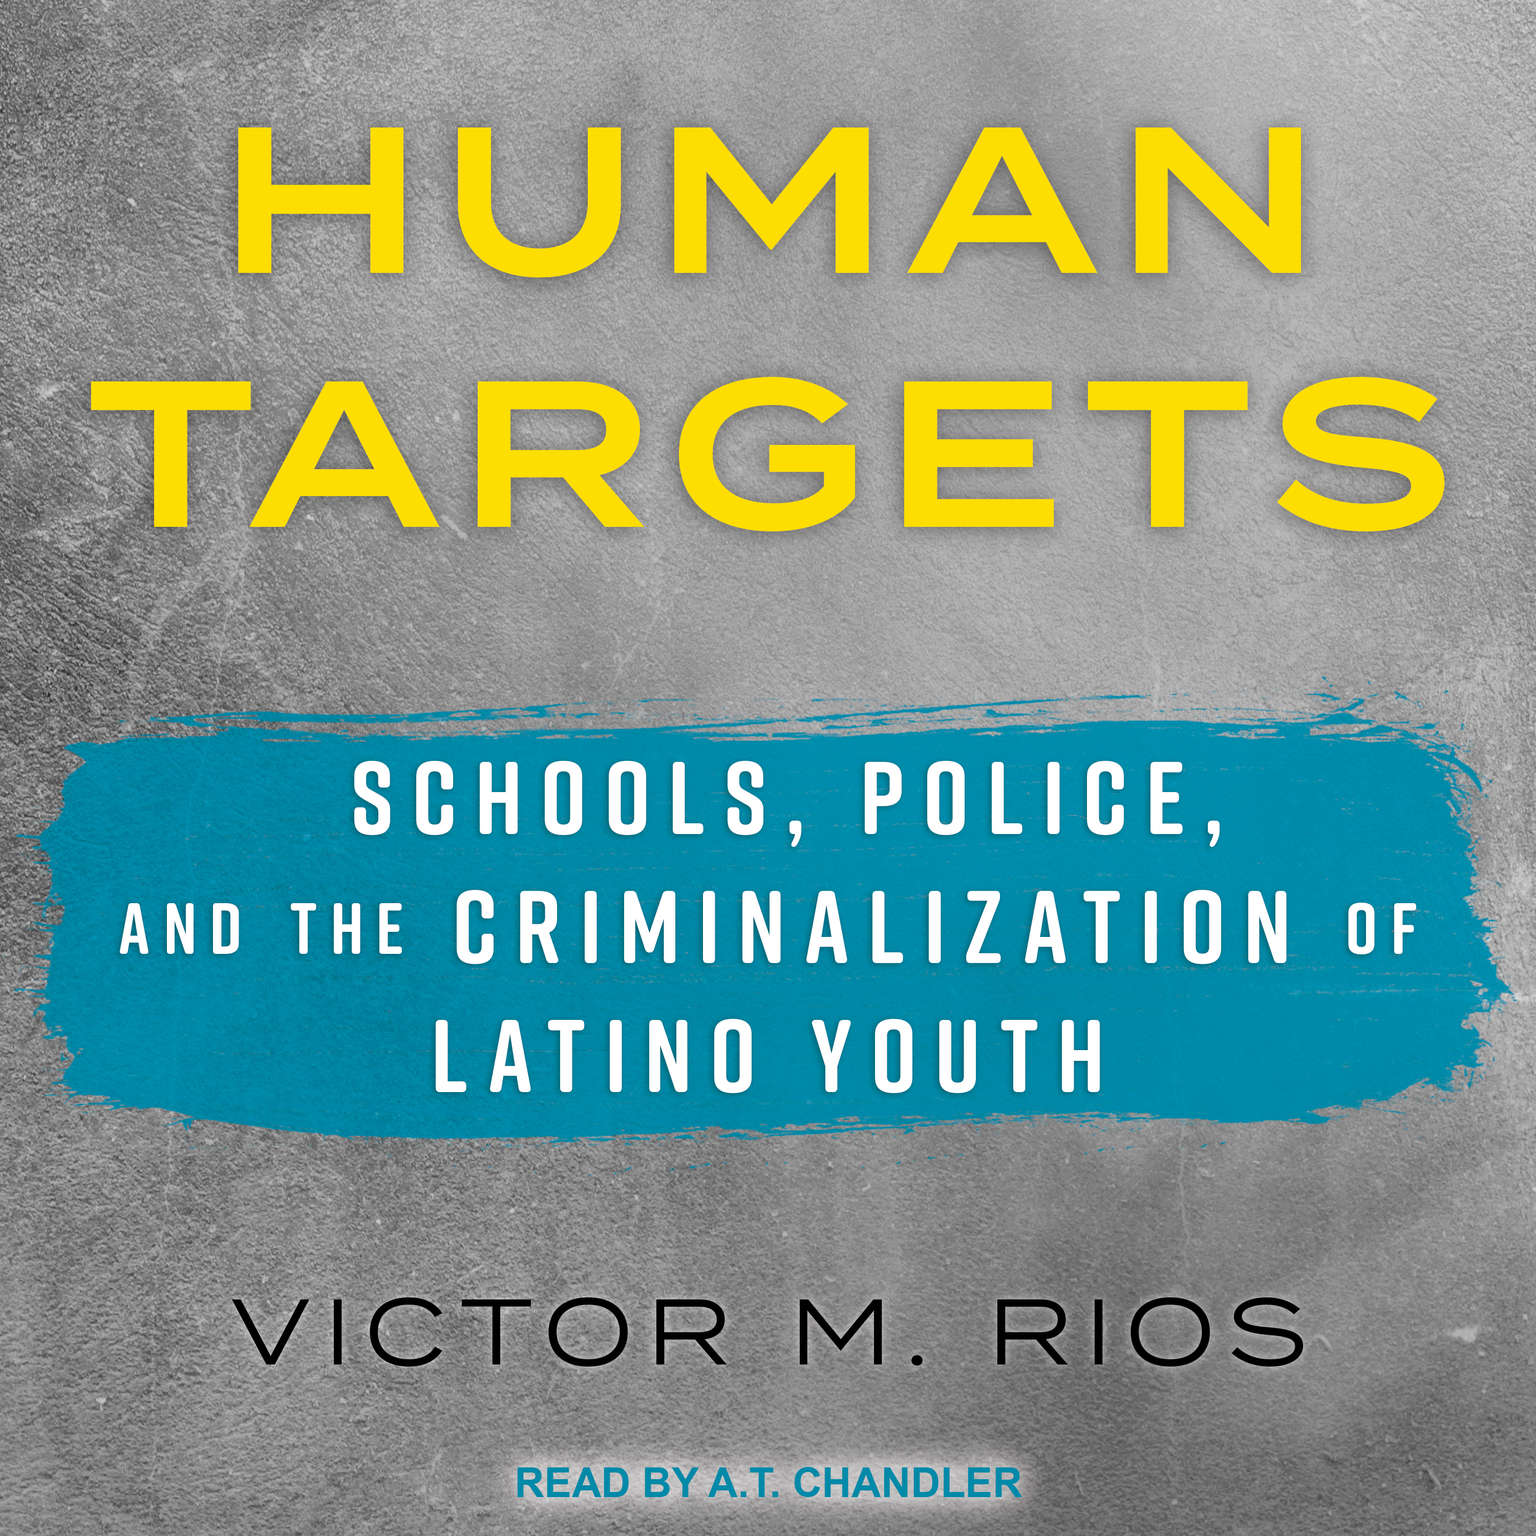 Human Targets: Schools, Police, and the Criminalization of Latino Youth Audiobook, by Victor M. Rios